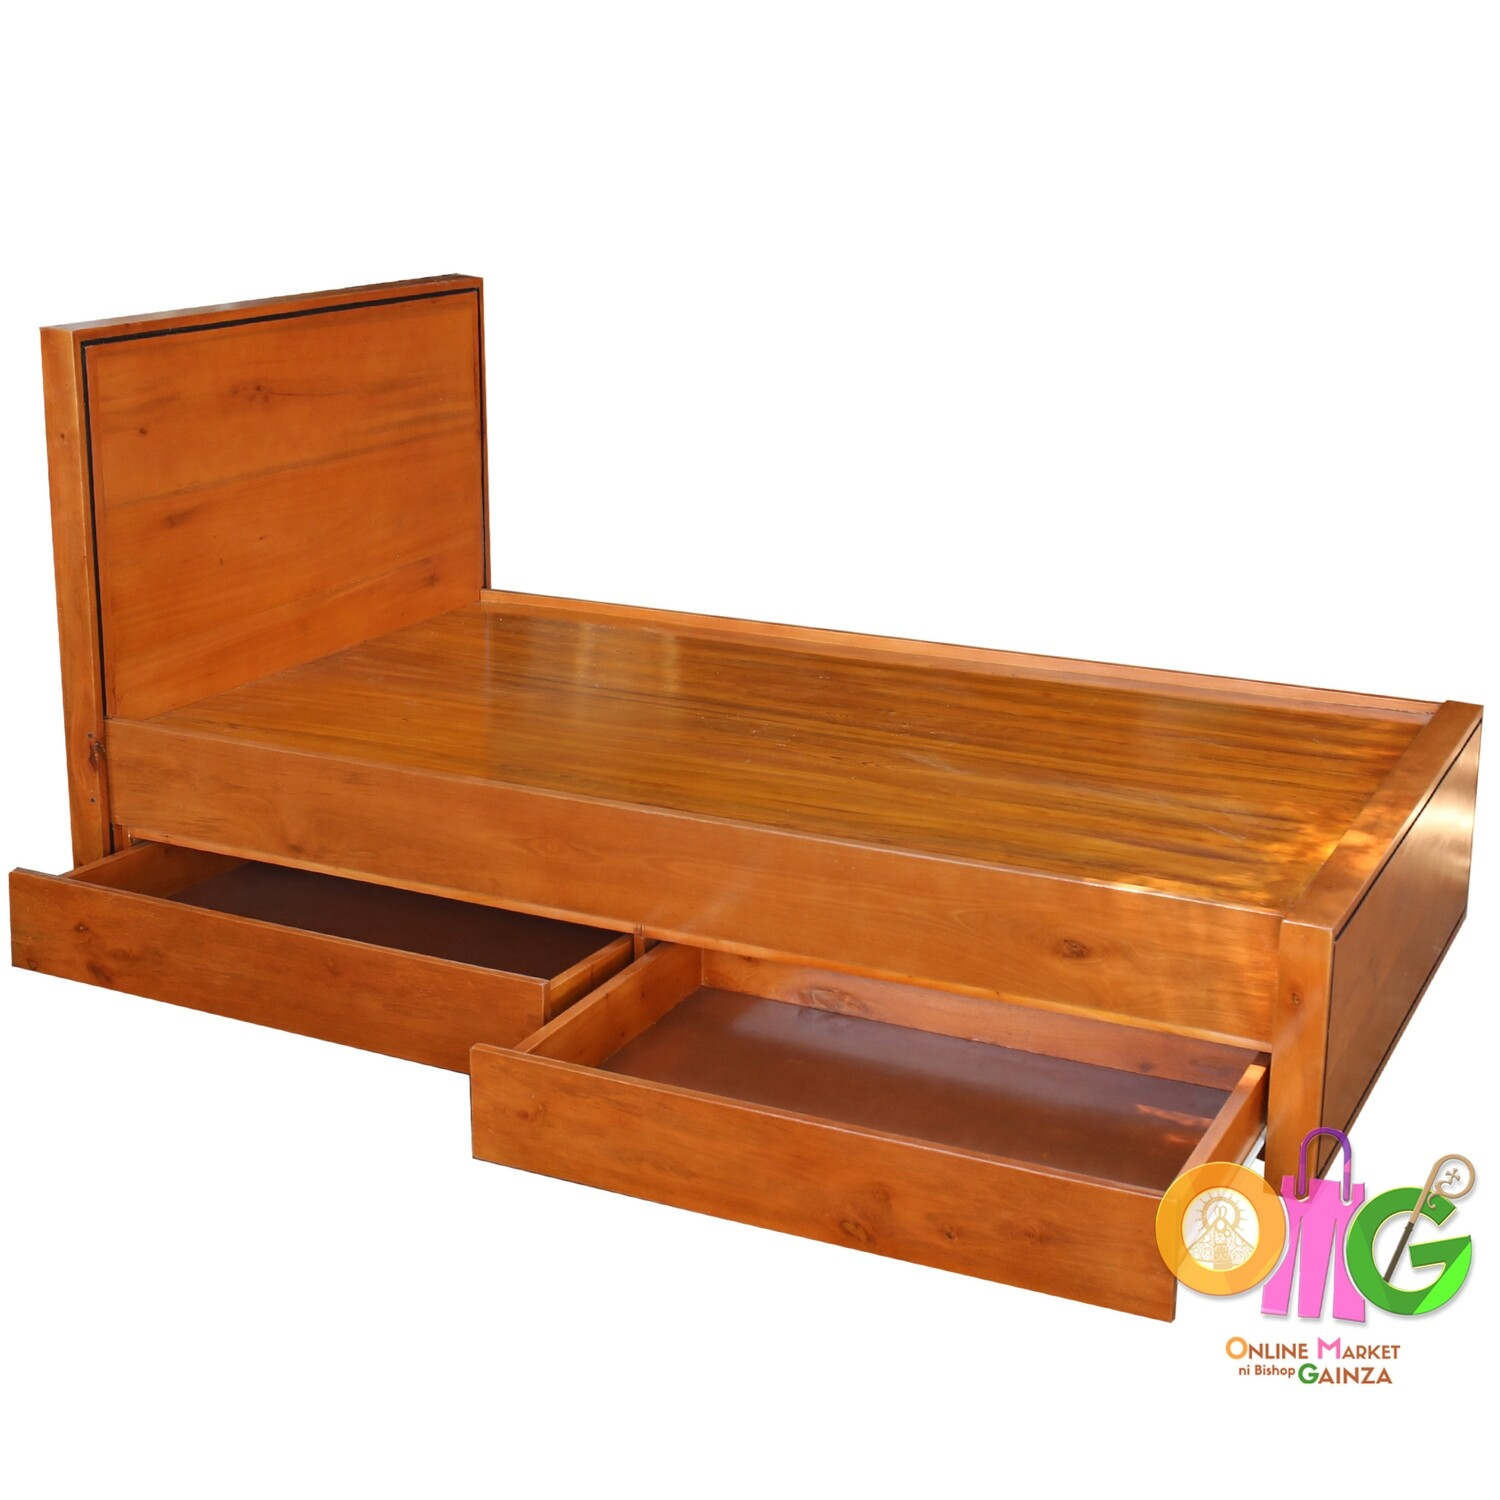 Congrande Furnitures - Bed with Drawer